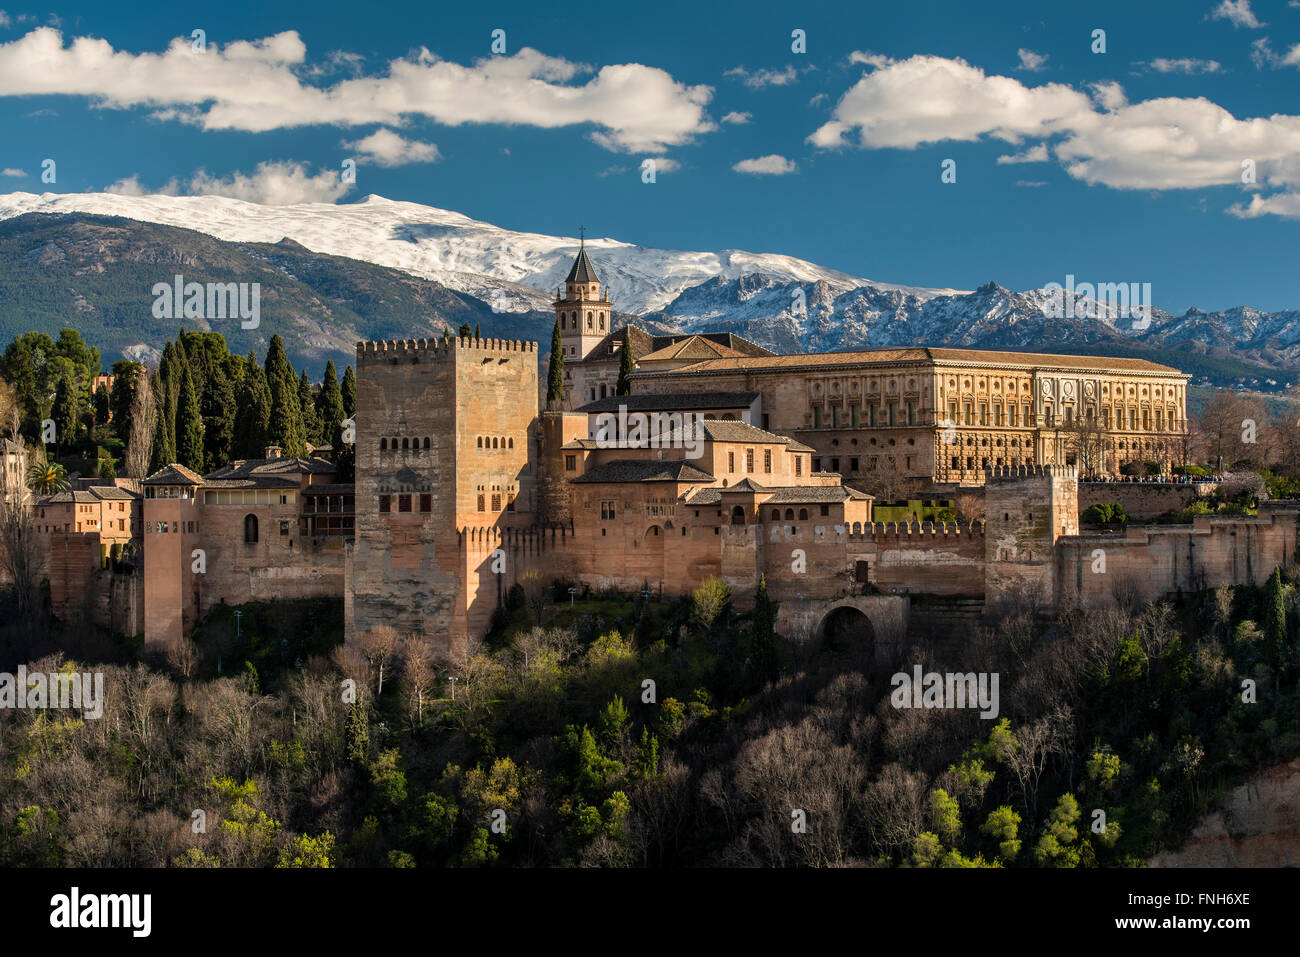 Alhambra palace with the snowy Sierra Nevada in the background, Granada, Andalusia, Spain - Stock Image